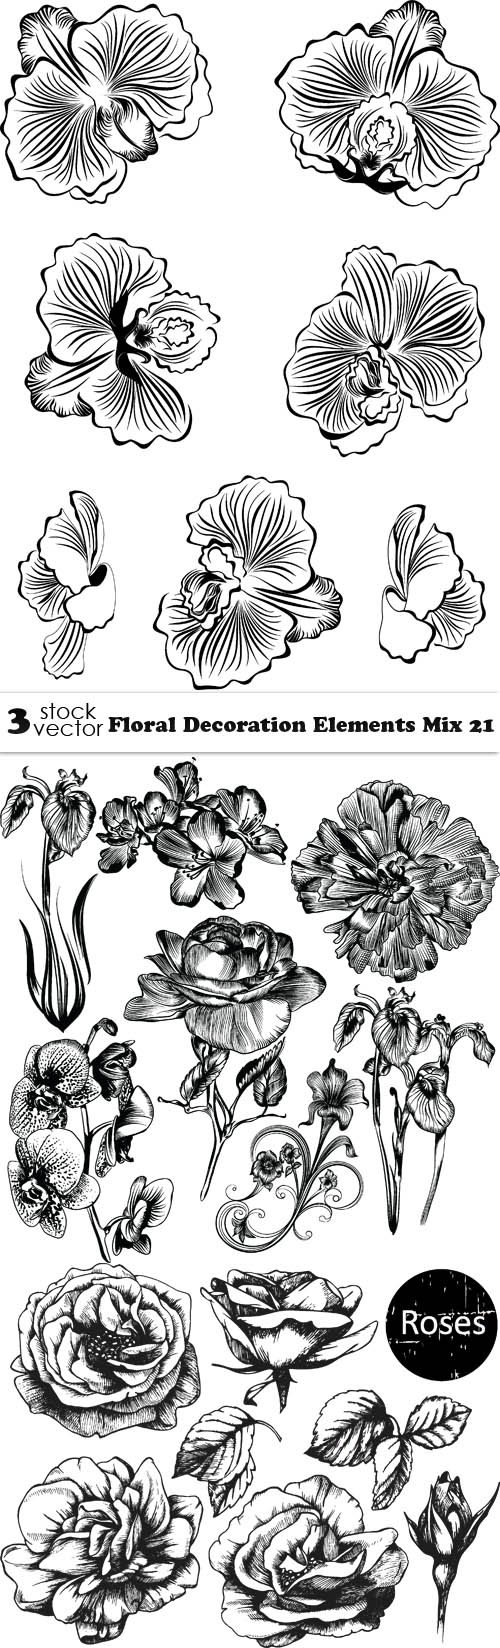 Vectors - Floral Decoration Elements Mix 21